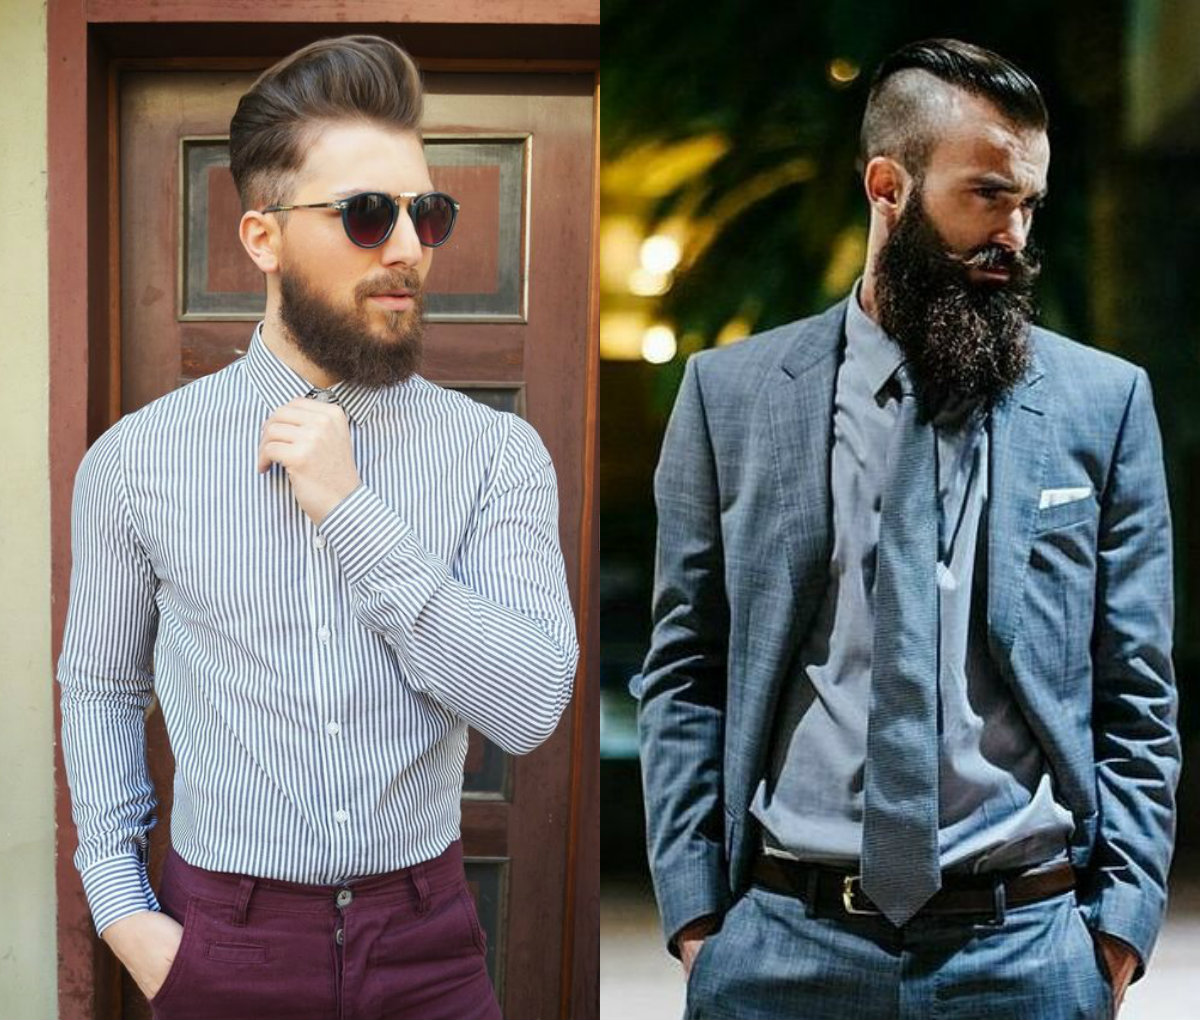 business-style-undercut-beard-mens-hairstyles-2017